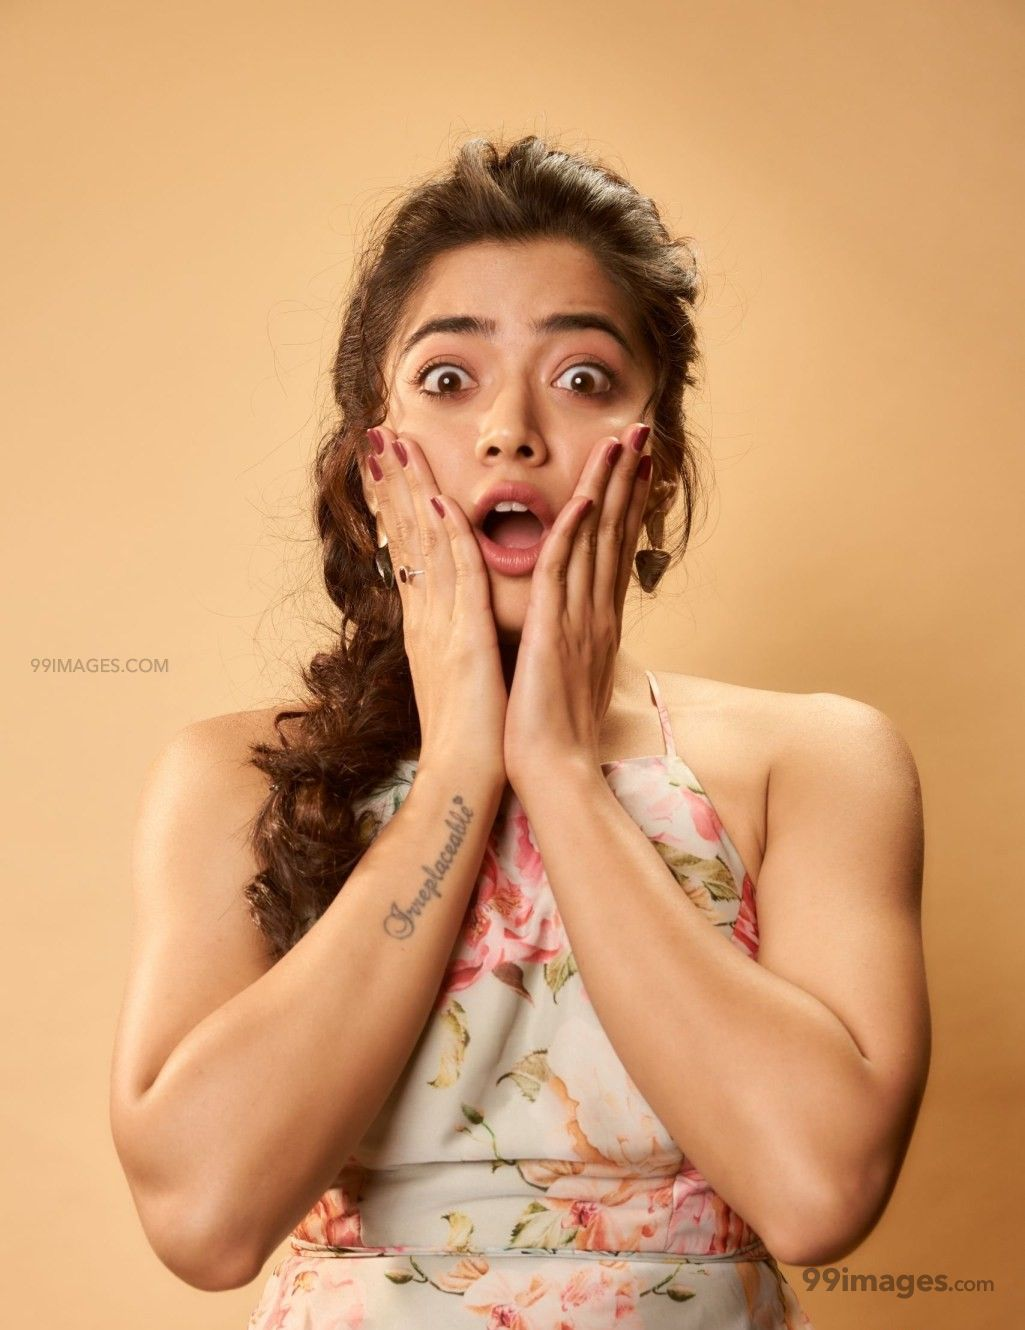 Rashmika Mandanna Beautiful HD Photos & Mobile Wallpapers HD (Android/iPhone) (1080p) (385532) - Rashmika Mandanna